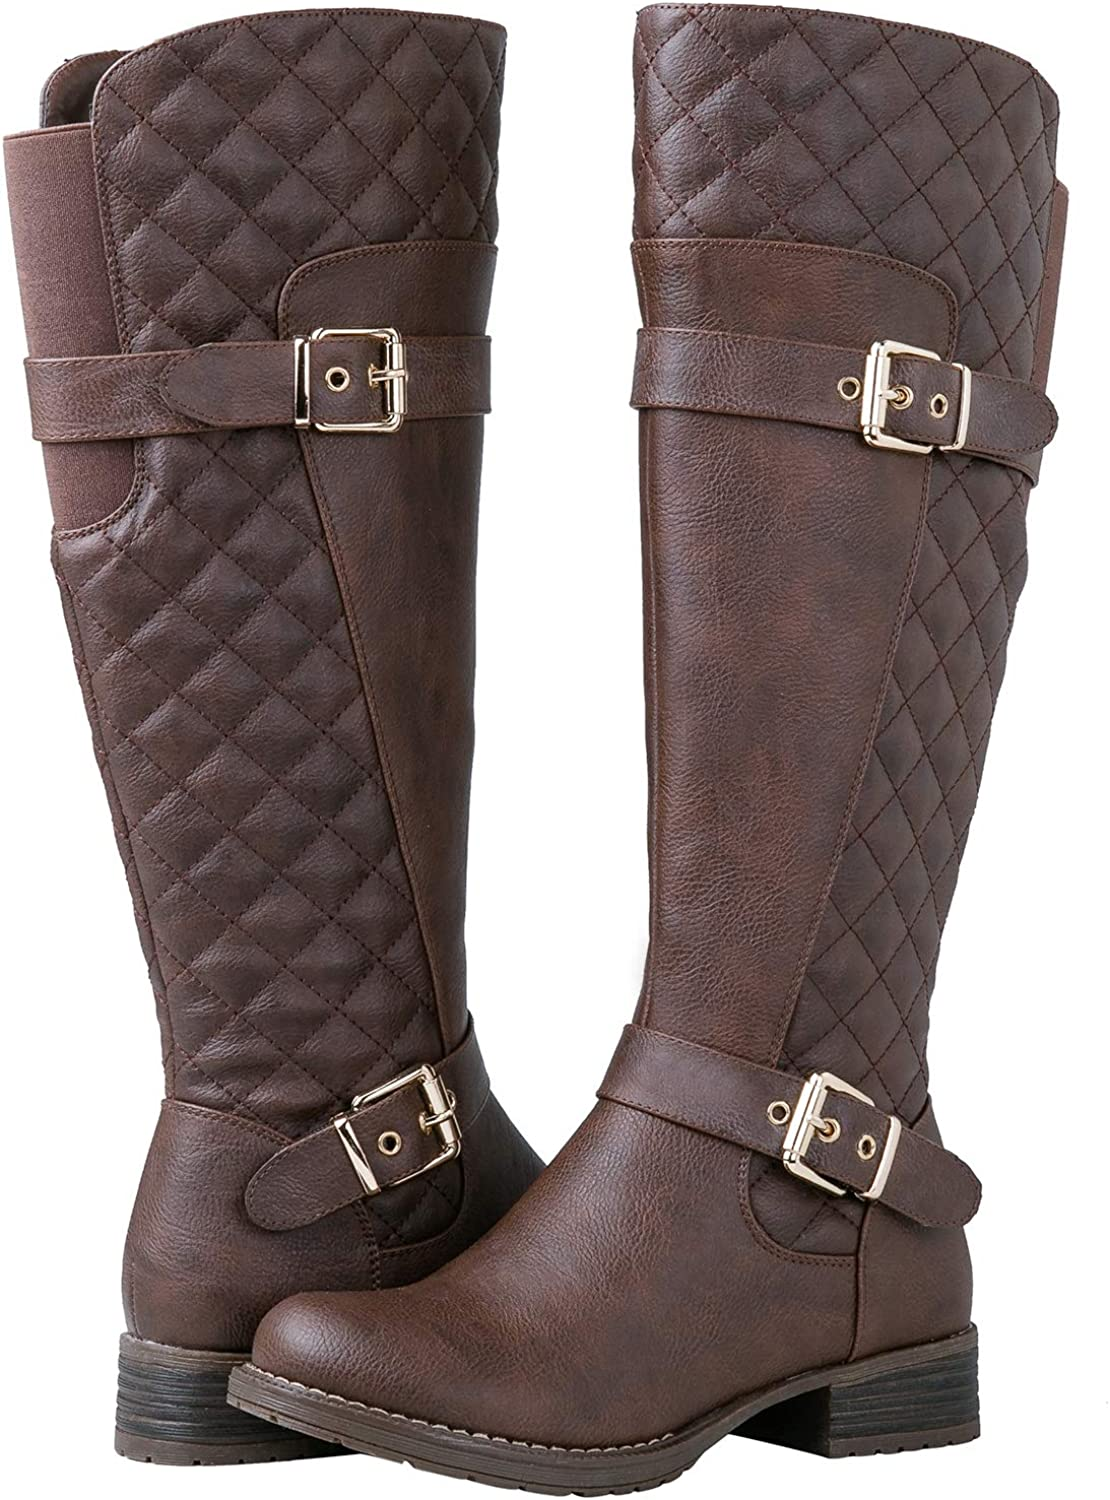 GLOBALWIN Women's Quilted Knee High Fashion Boots